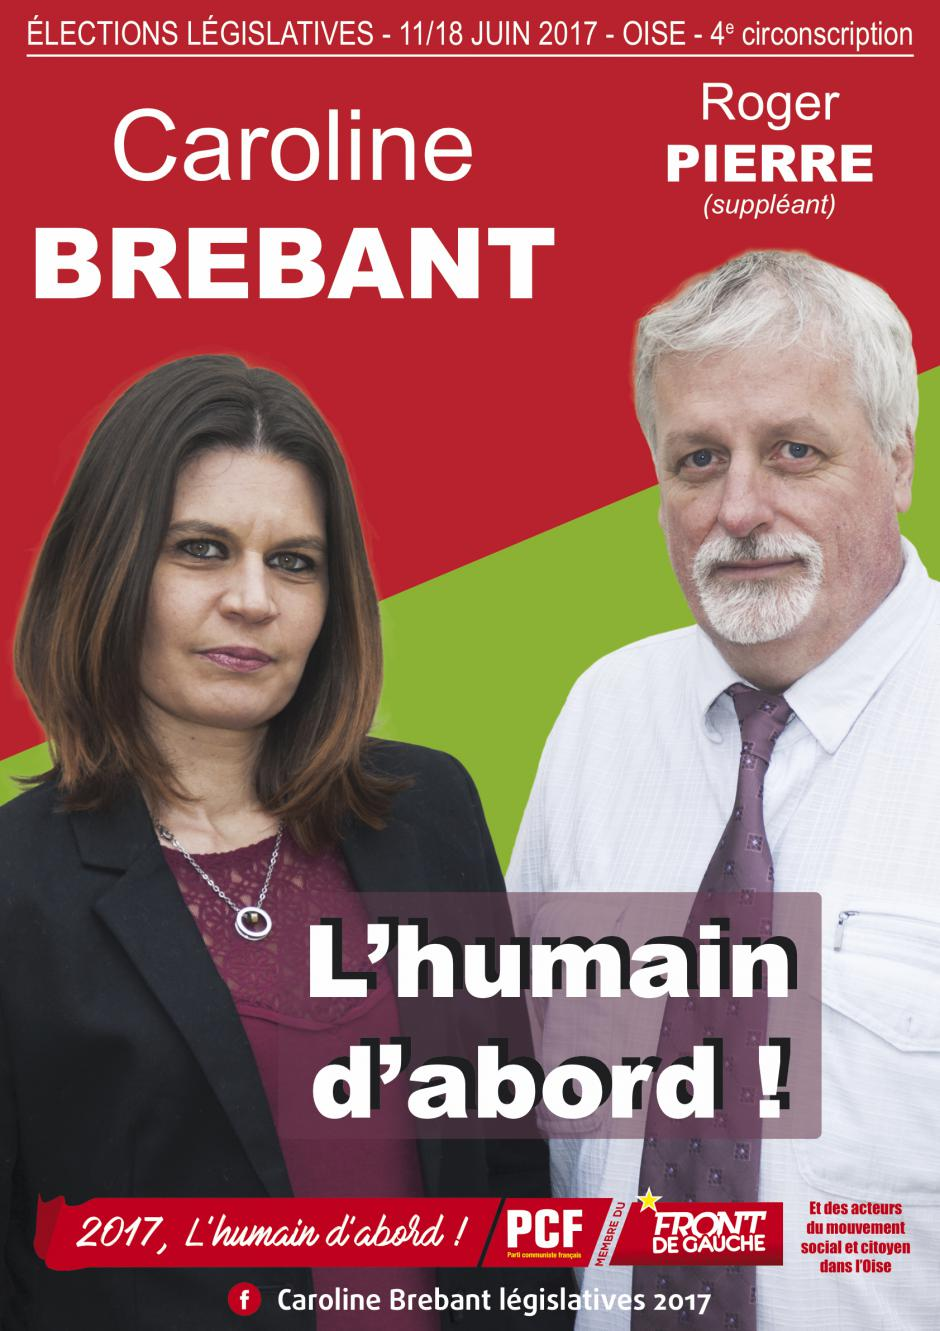 Législatives 2017 - 4e circonscription - Chantilly-Senlis